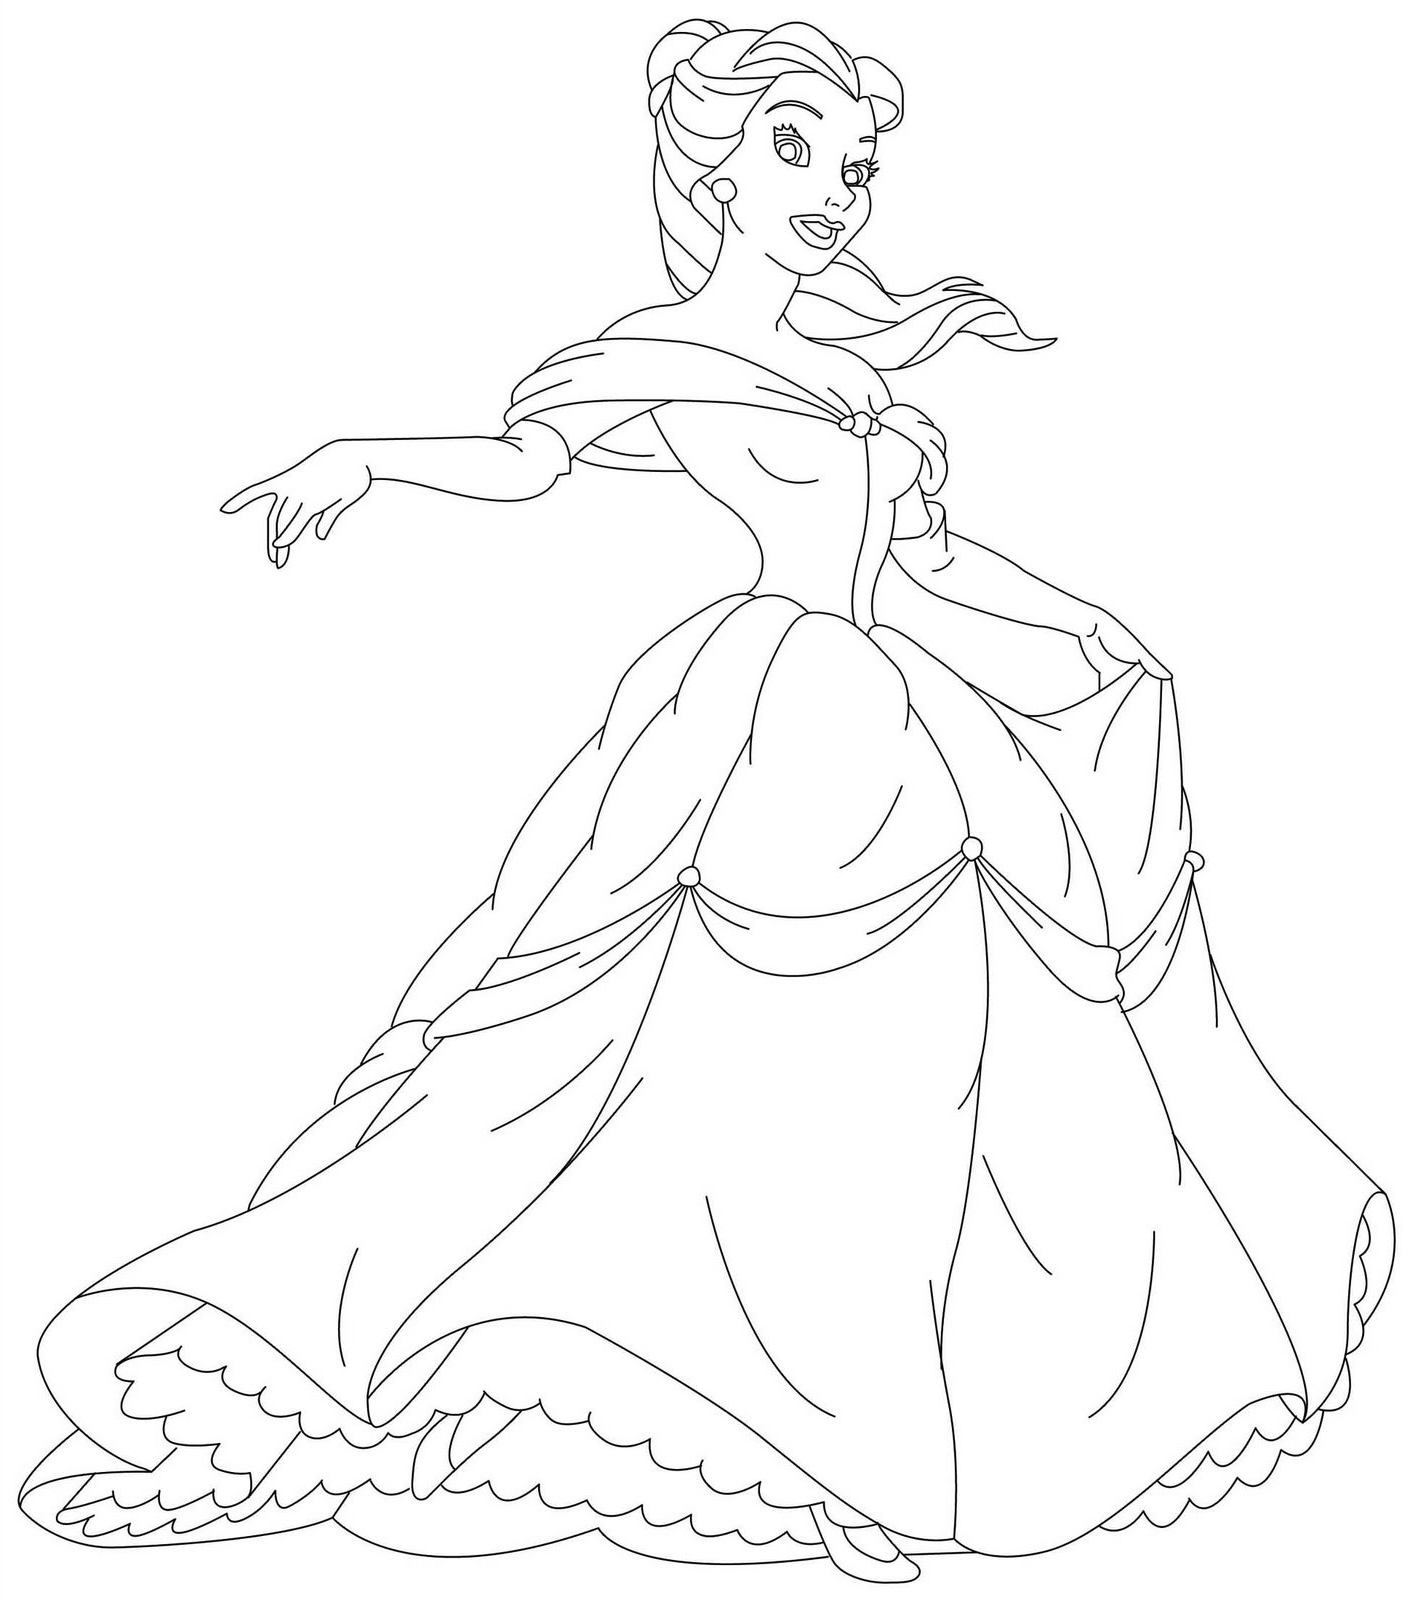 kids disney princess coloring pages - photo#39